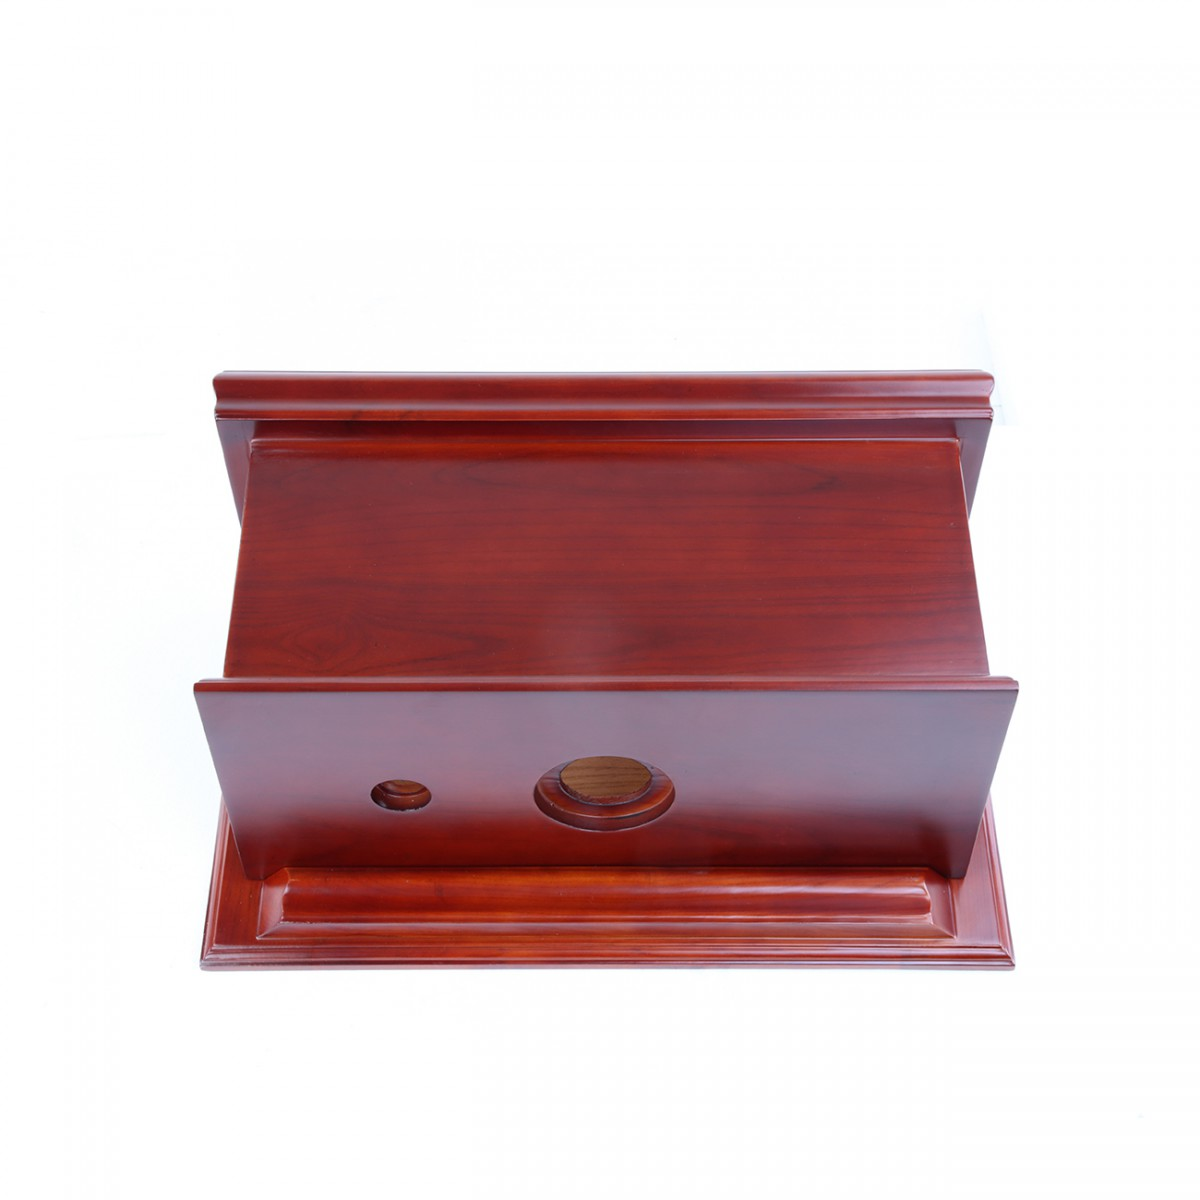 Cherry Wood Flat High Tank Pull Chain Toilet Round Biscuit Satin Rear Entry Pipes Satin High Tank Pull Chain Toilets High Tank Toilet with Round Bowl Pull Chain Toilets